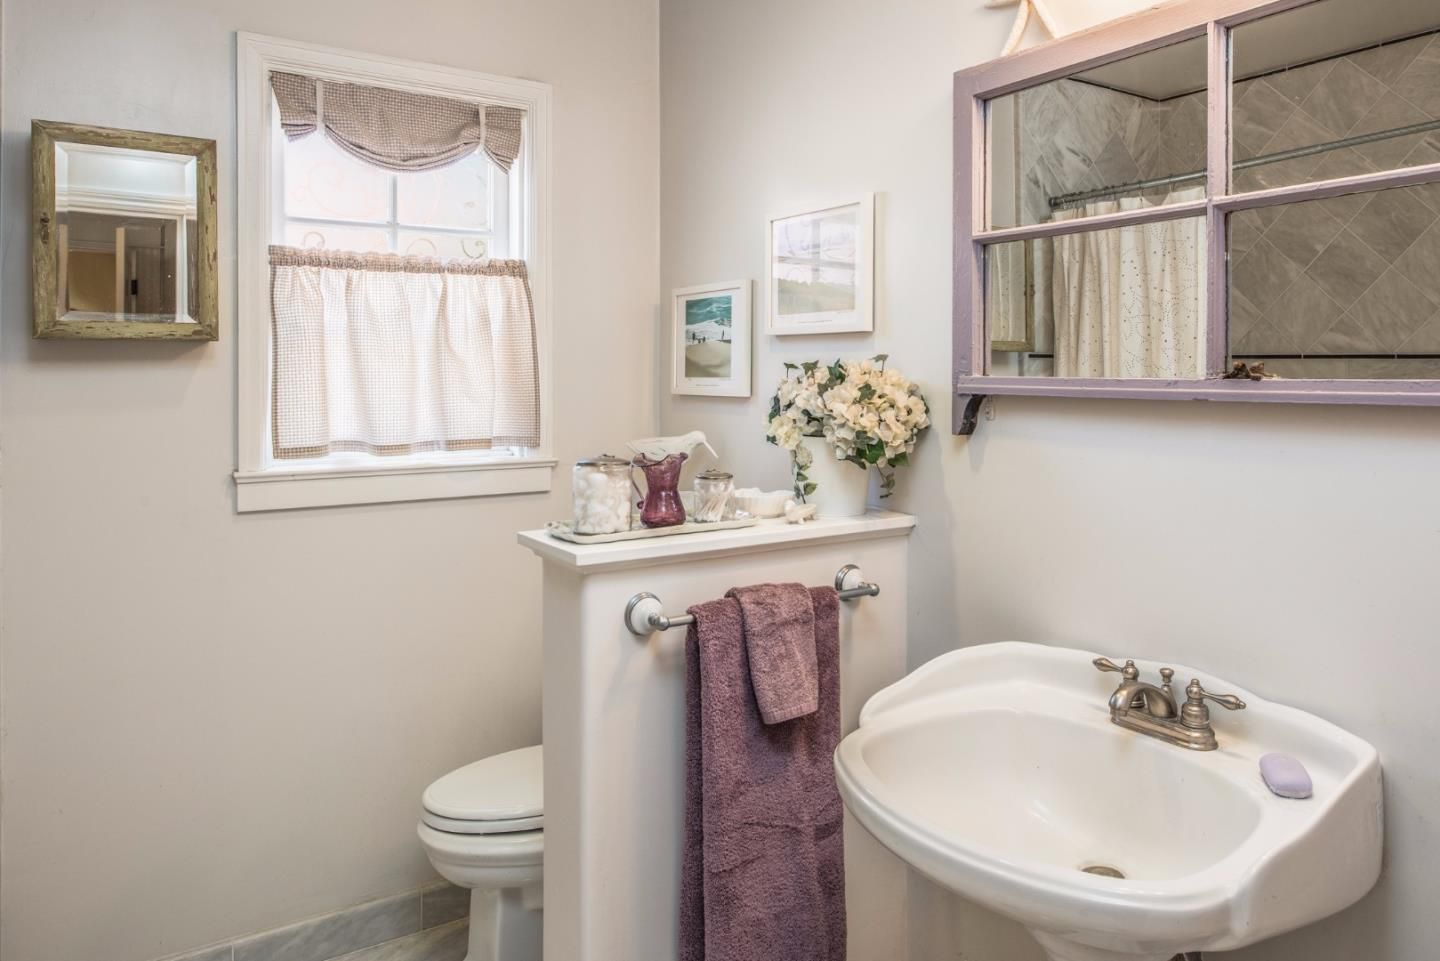 950 14th St, Pacific Grove, CA for sale in Candy Cane Lane neighborhood - downstairs bath